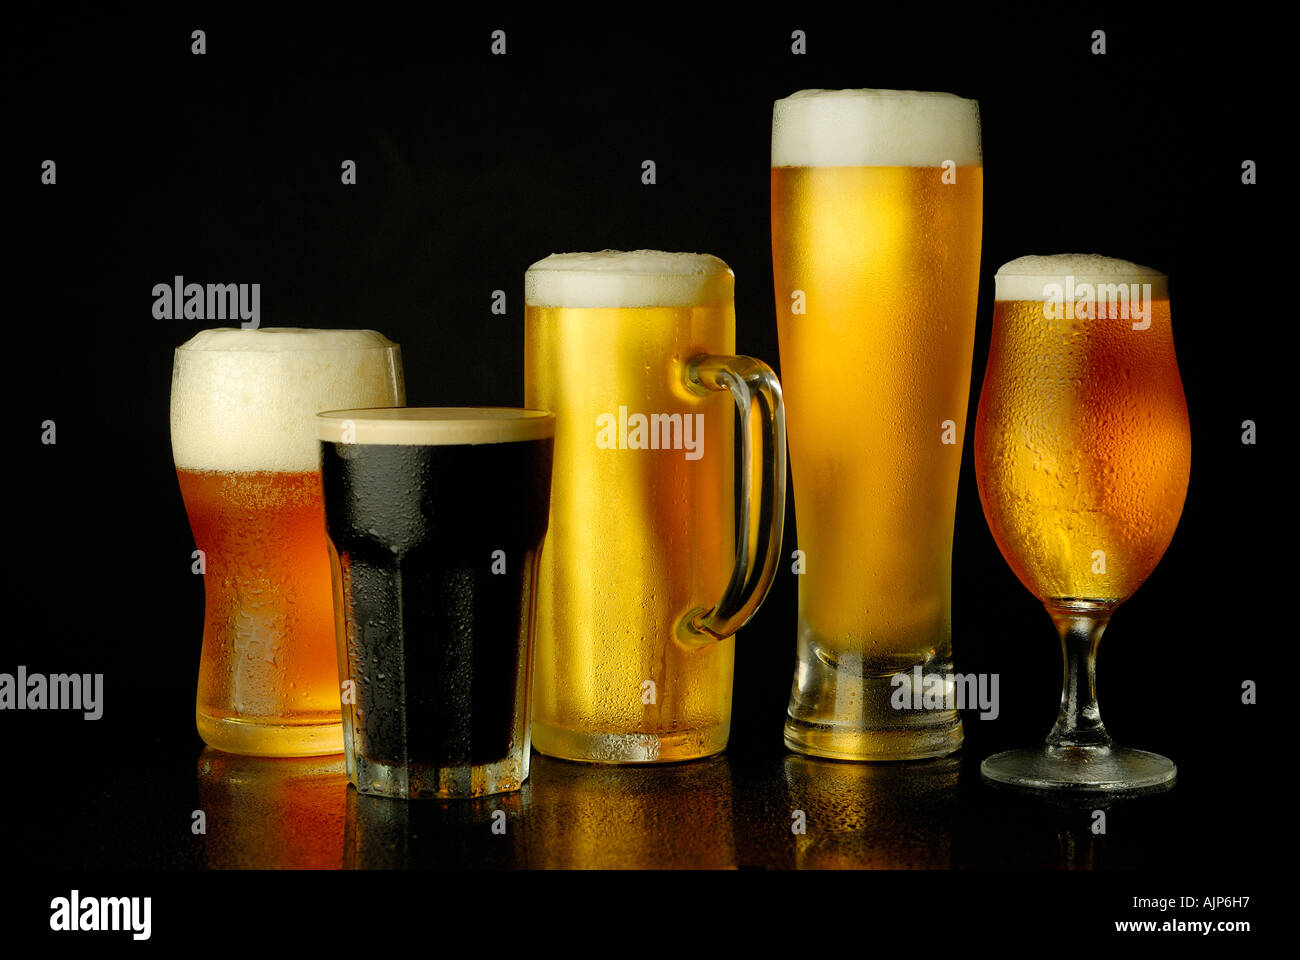 BEER COLORFUL VARIETY MUGS OF COLD BEER GLASS FULL SILHOUETTED ON BLACK BACKGROUND Stock Photo